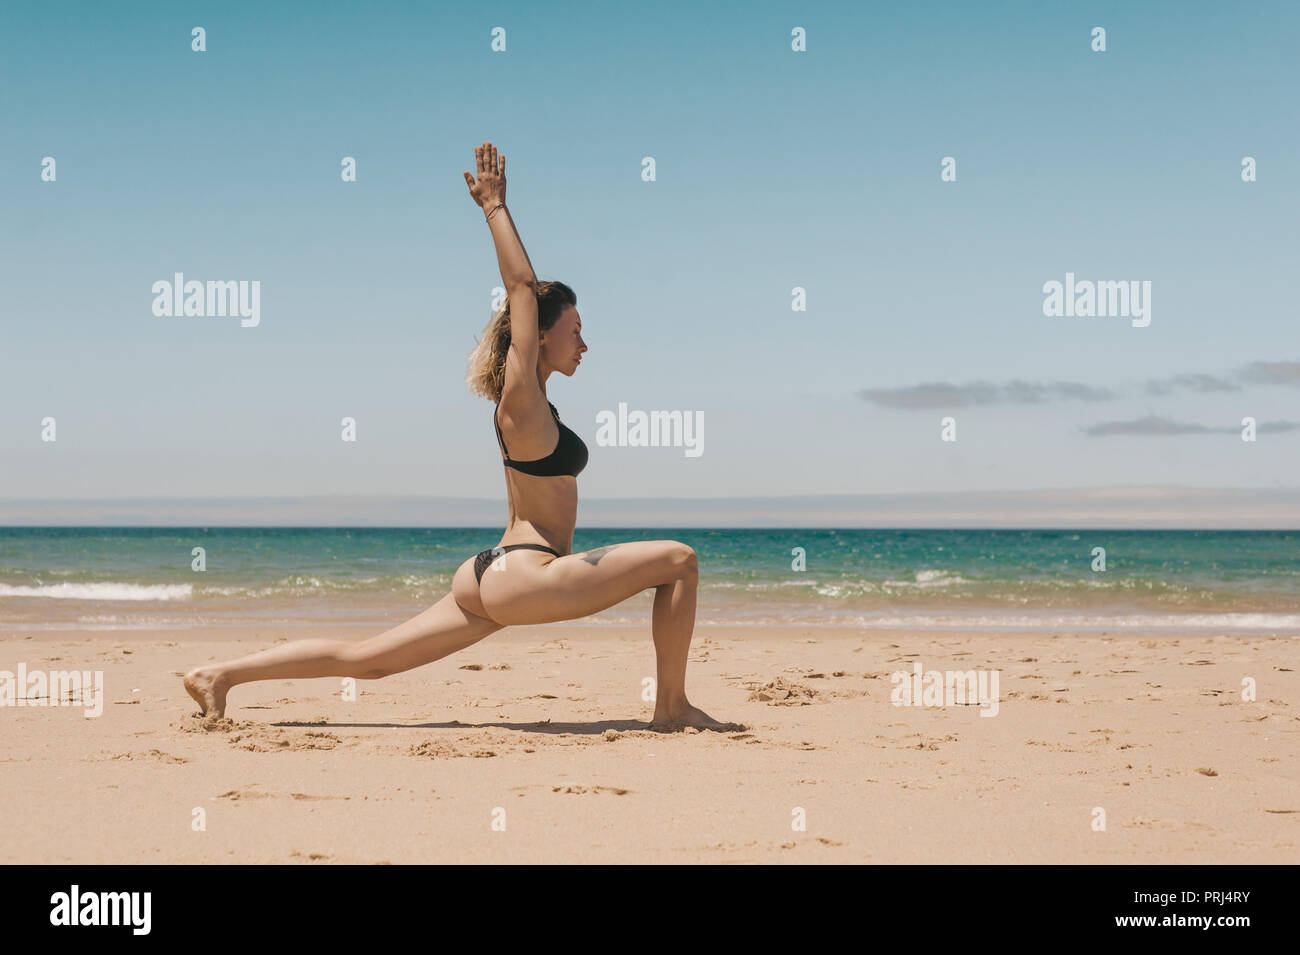 side view of young woman in black bikini standing in Warrior yoga position on sandy beach Stock Photo